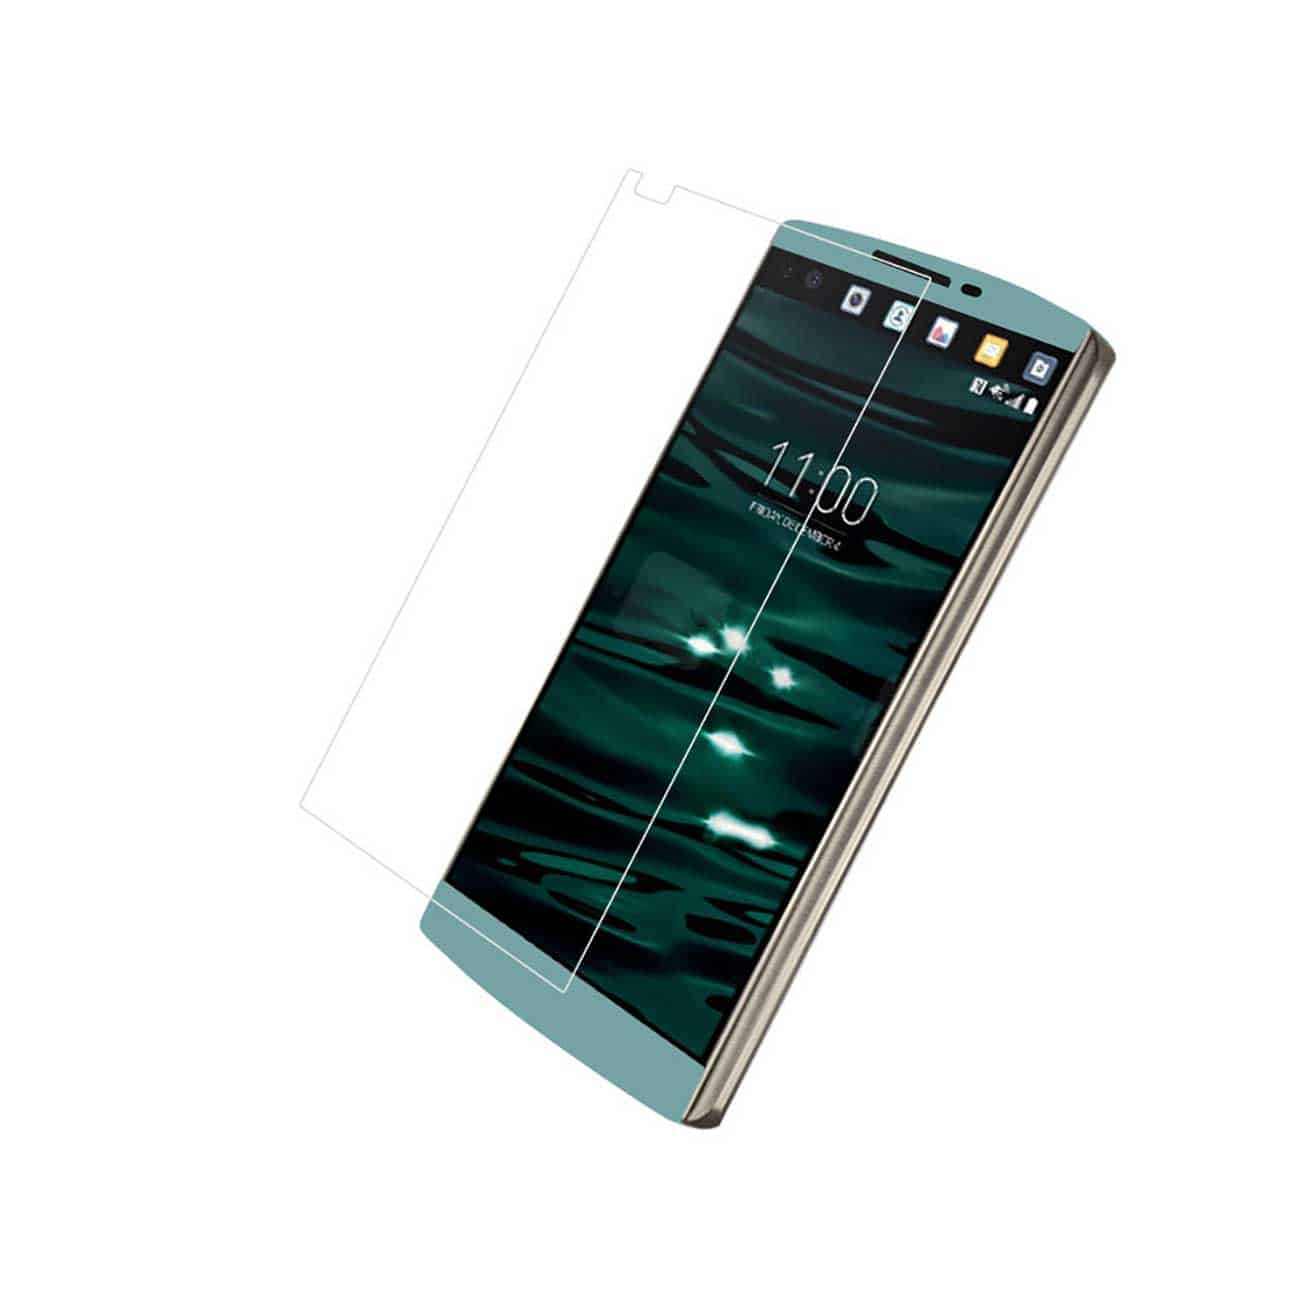 LG V10 TEMPERED GLASS SCREEN PROTECTOR IN CLEAR